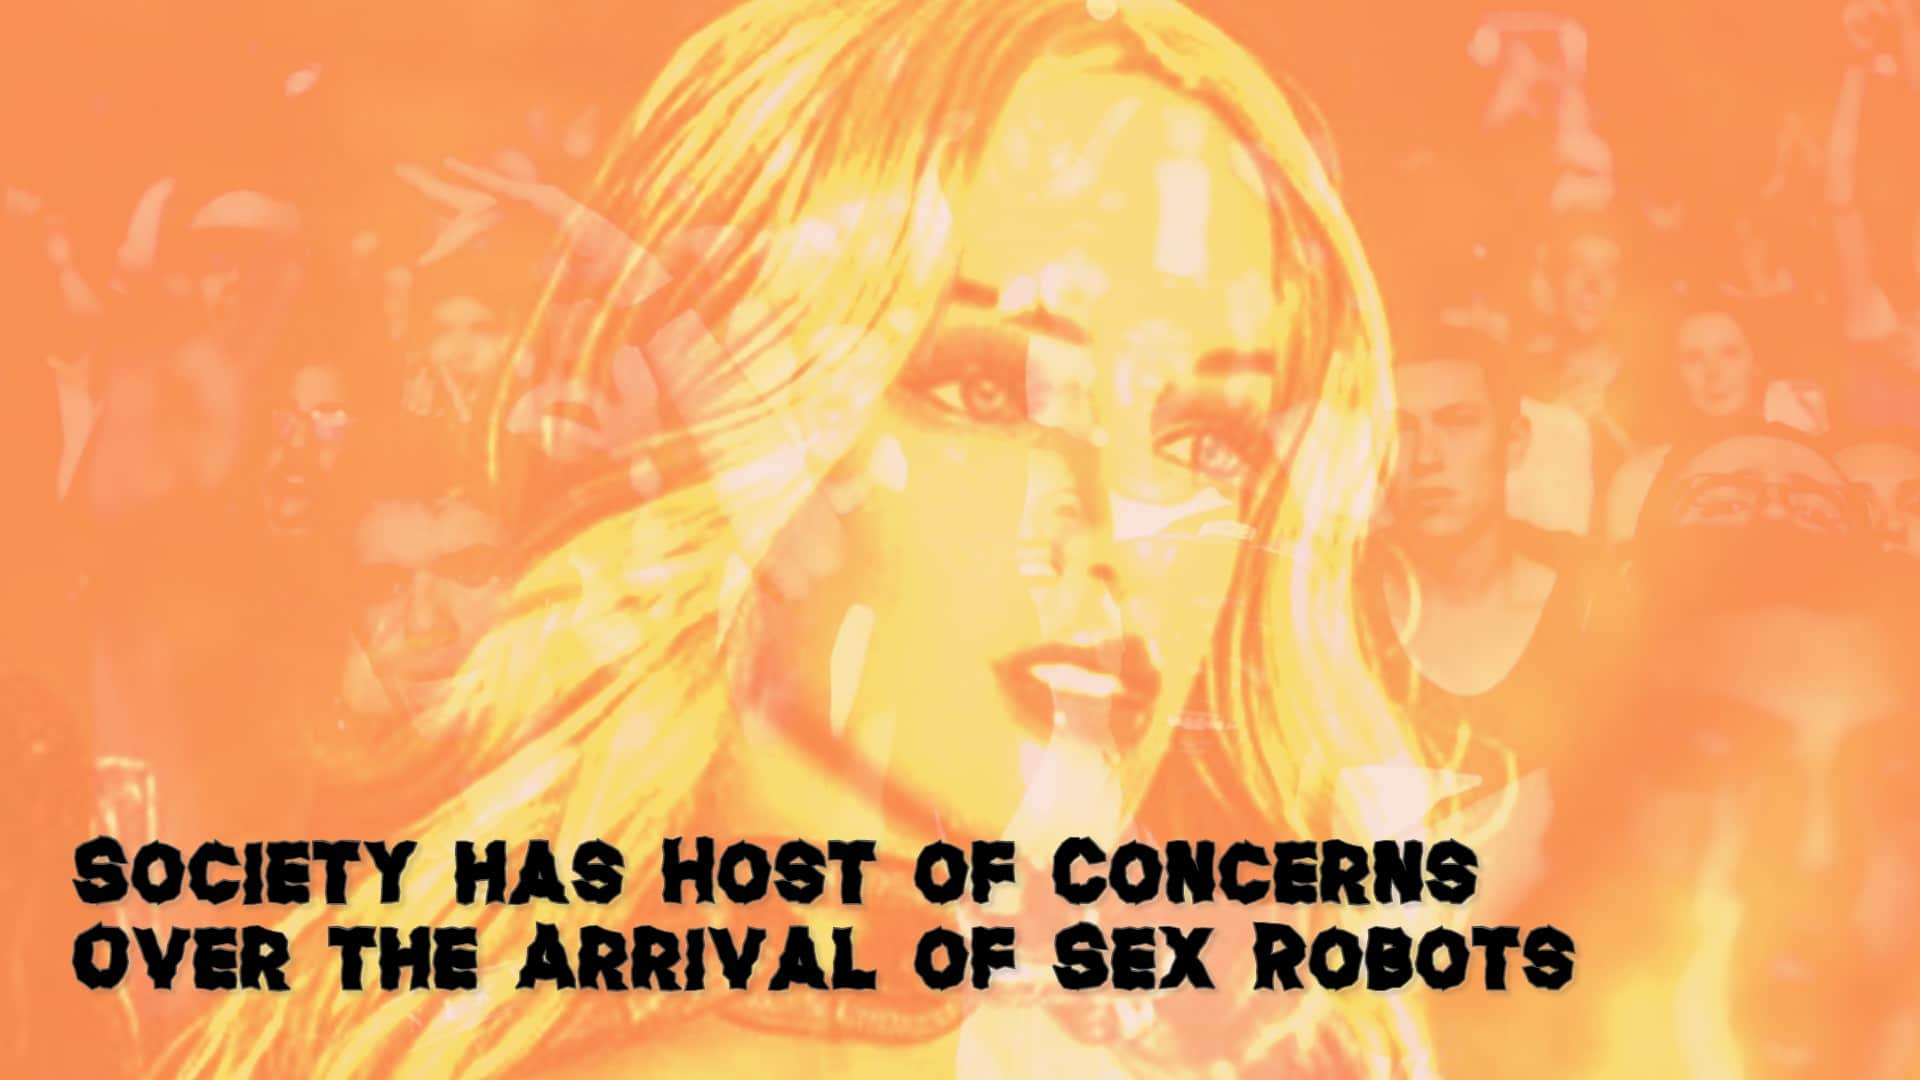 Society Has Host of Concerns Over the Arrival of Sex Robots